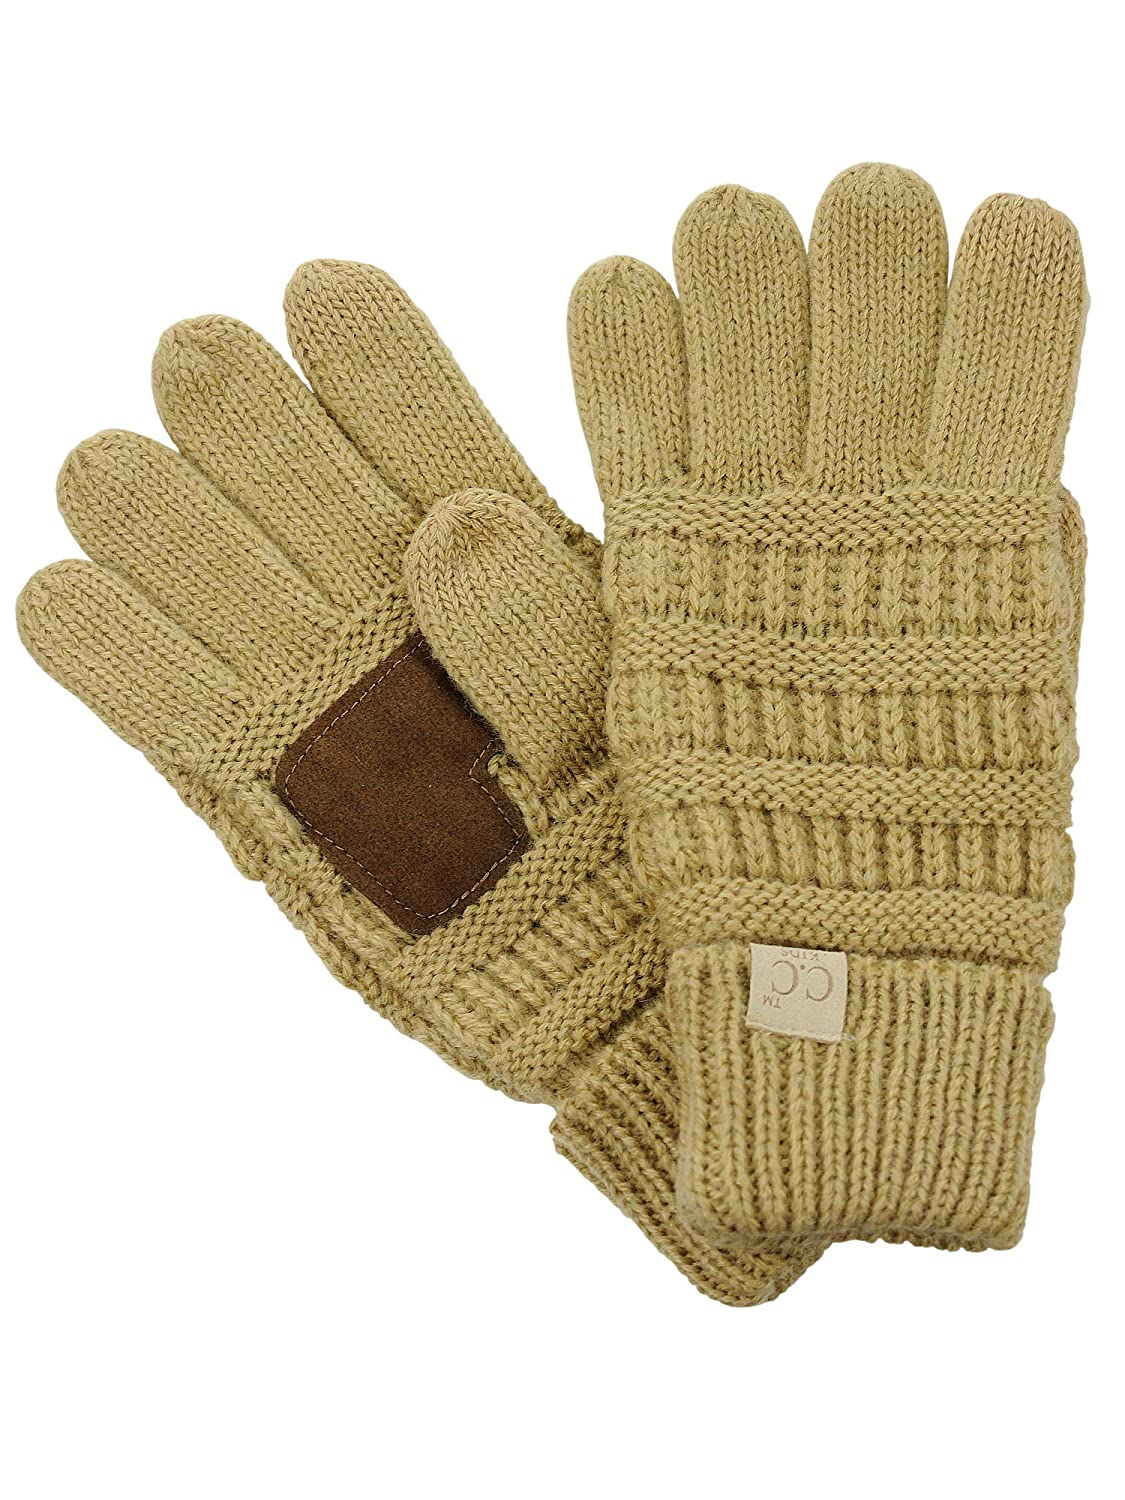 C.C Kids Childrens Cable Knit Warm Anti-Slip Touchscreen Texting Gloves